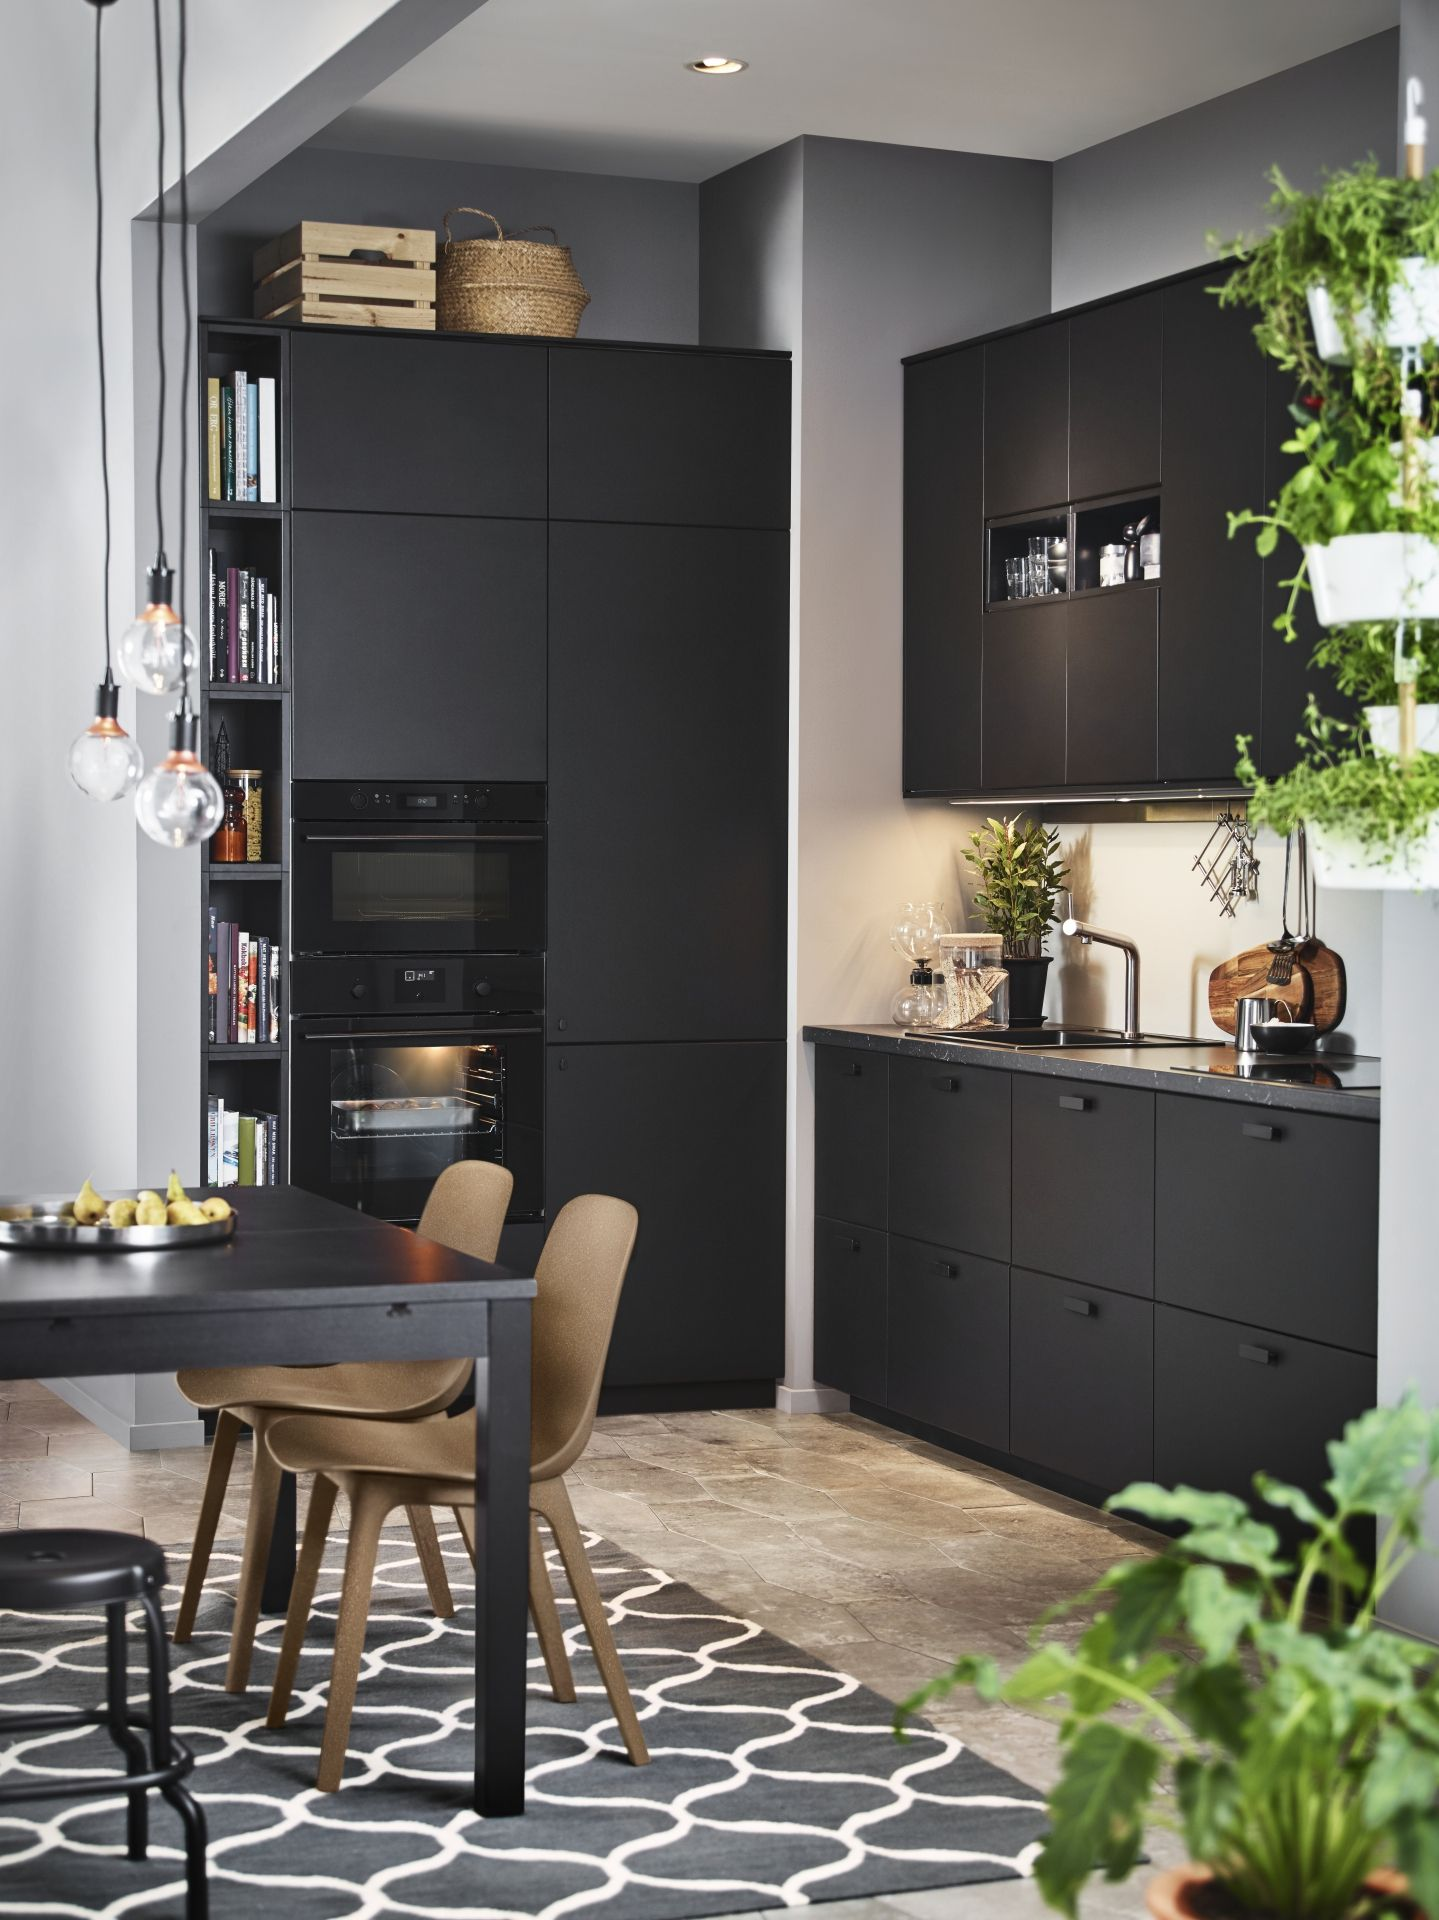 metod kungsbacka keuken ikea ikeanl ikeanederland designdroom keuken inspiratie wooninspiratie. Black Bedroom Furniture Sets. Home Design Ideas